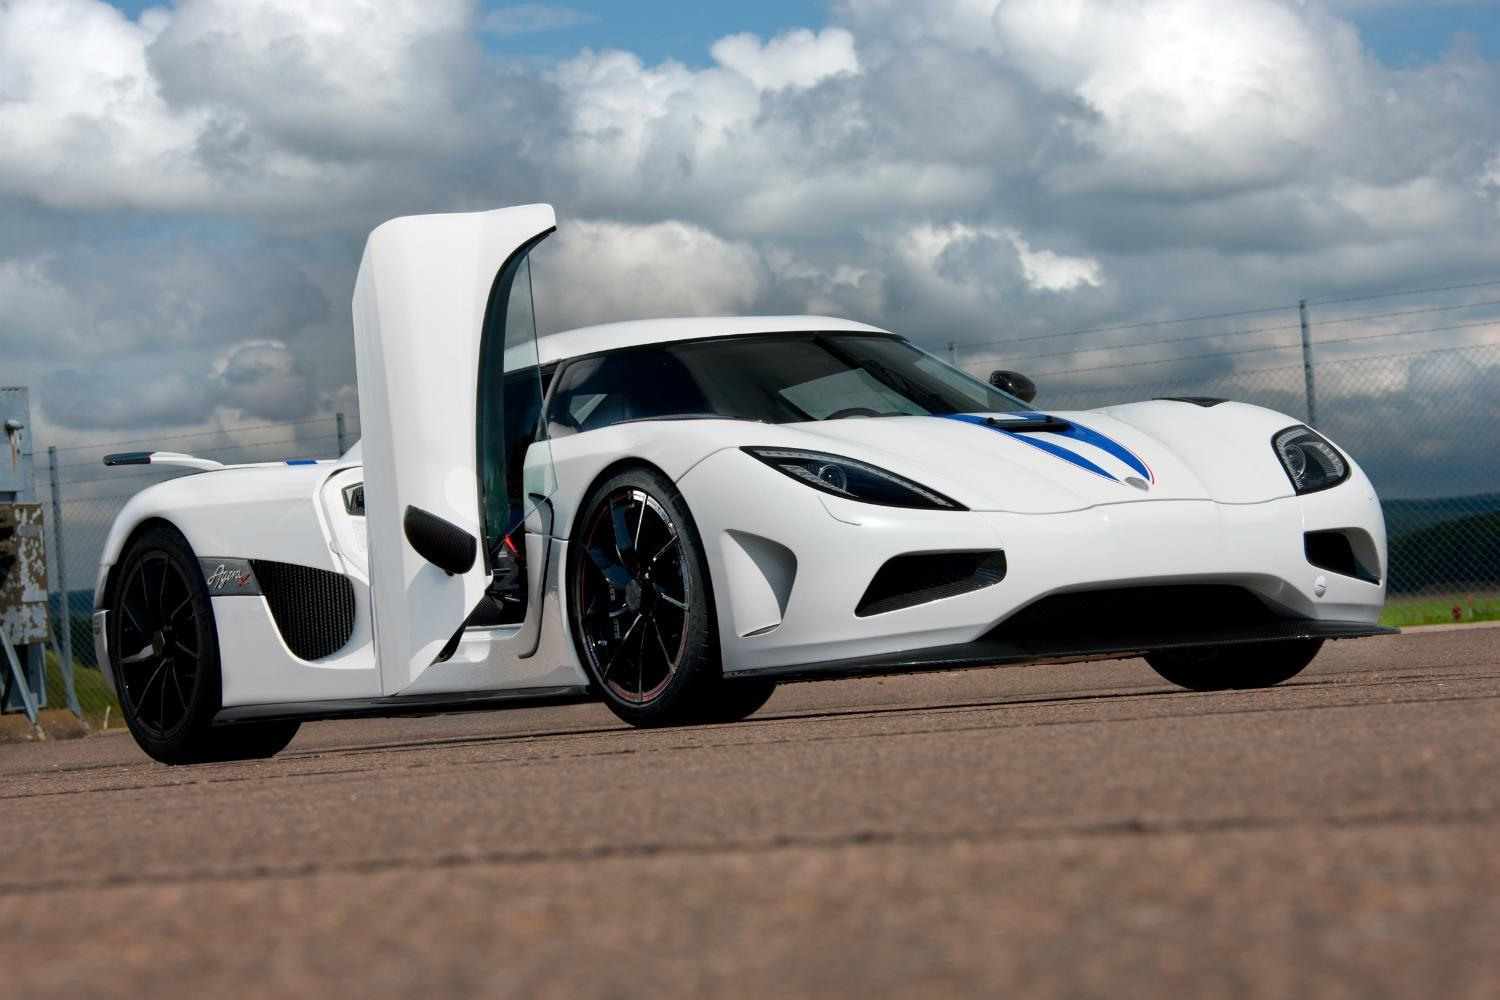 A Rare Koenigsegg Supercar Going Up In Flames Makes For